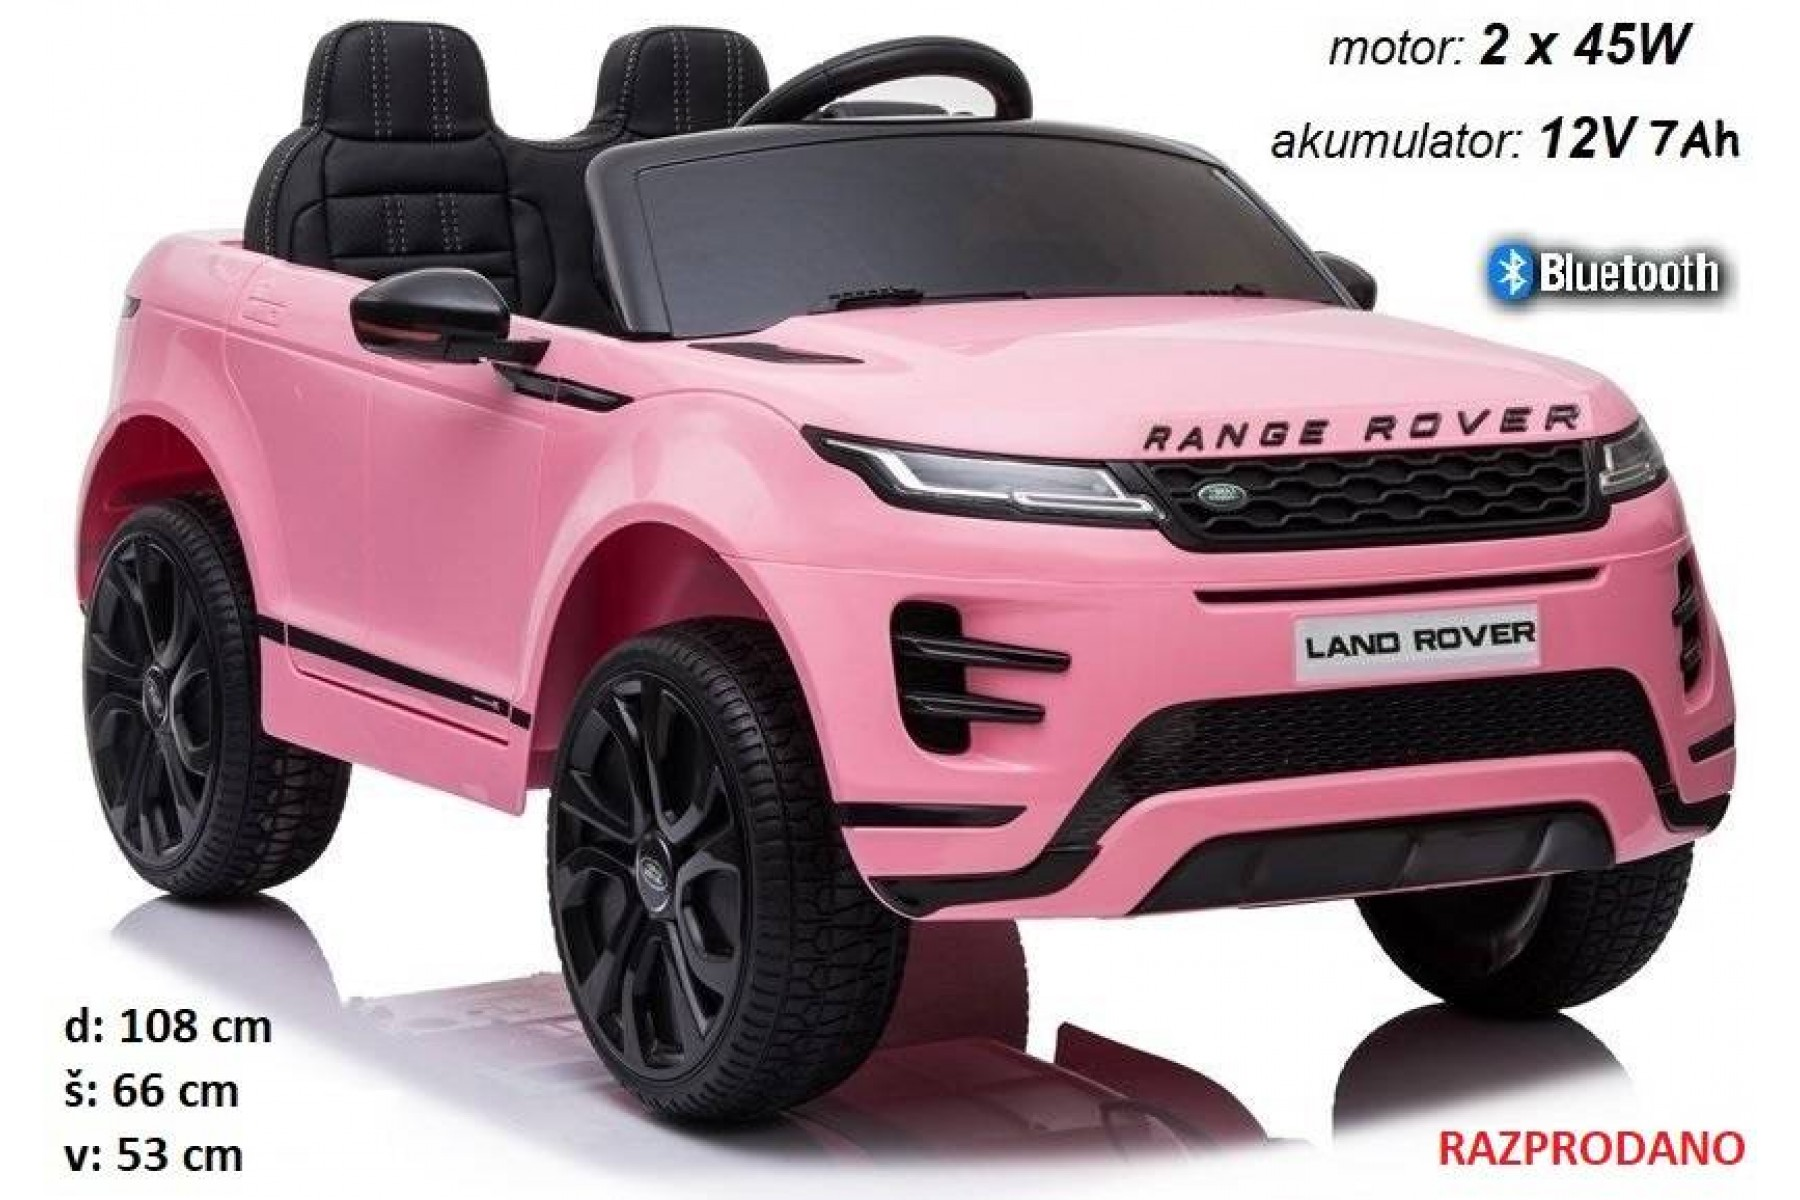 Range Rover Evoque (roza) Bluetooth